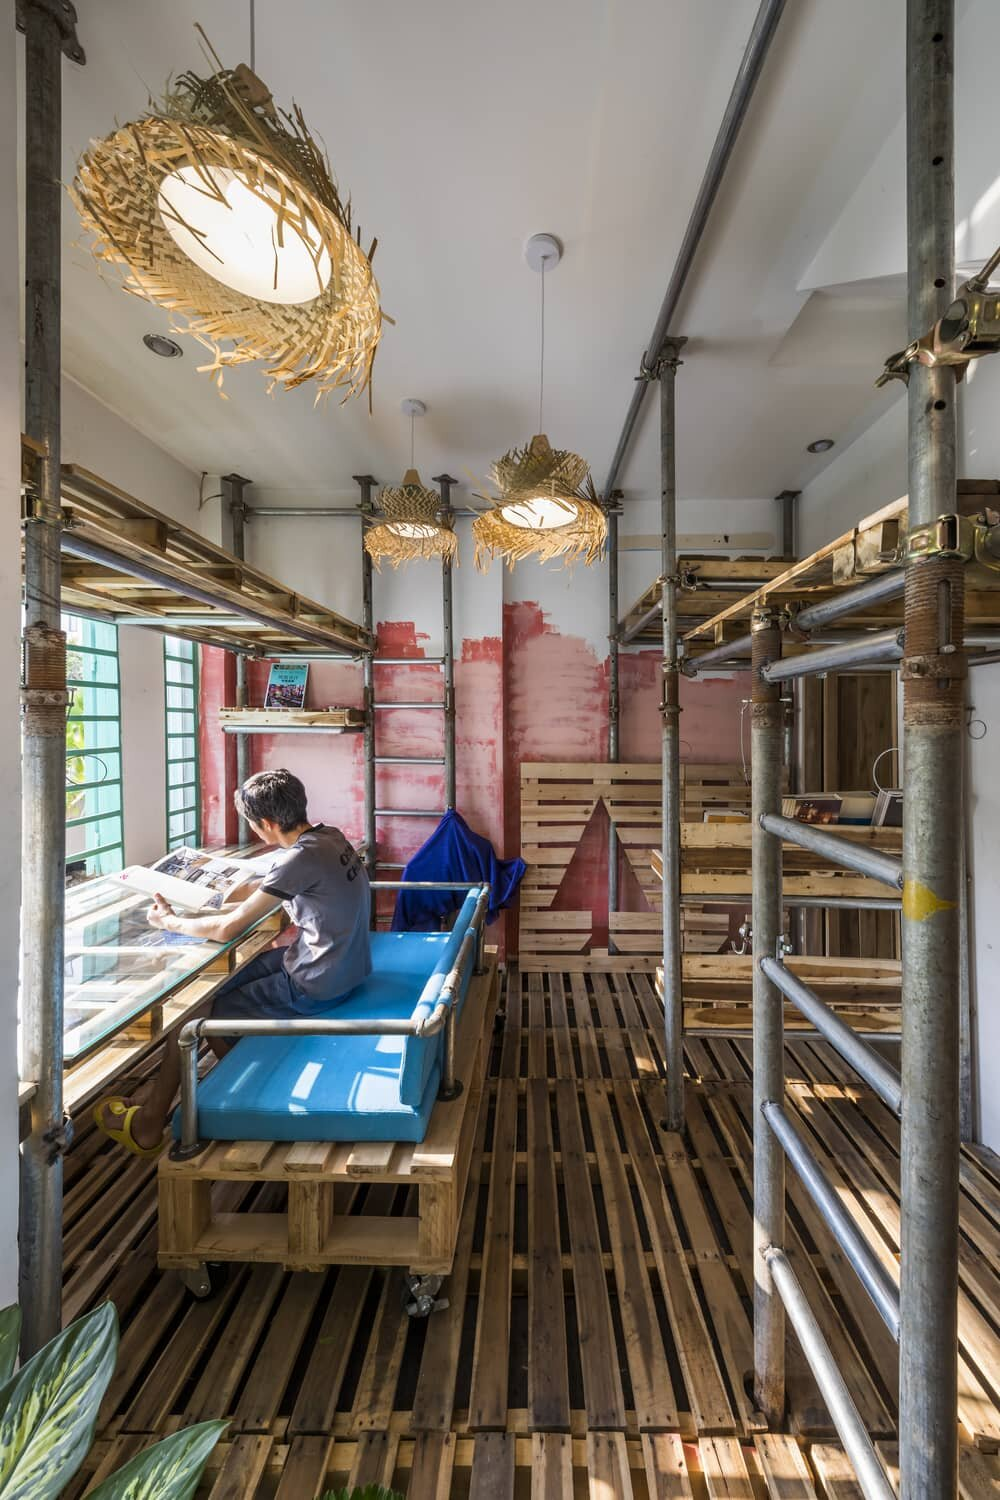 Designer Mamoru Maeda Made His Own Atelier in a Space of 10 sq.m